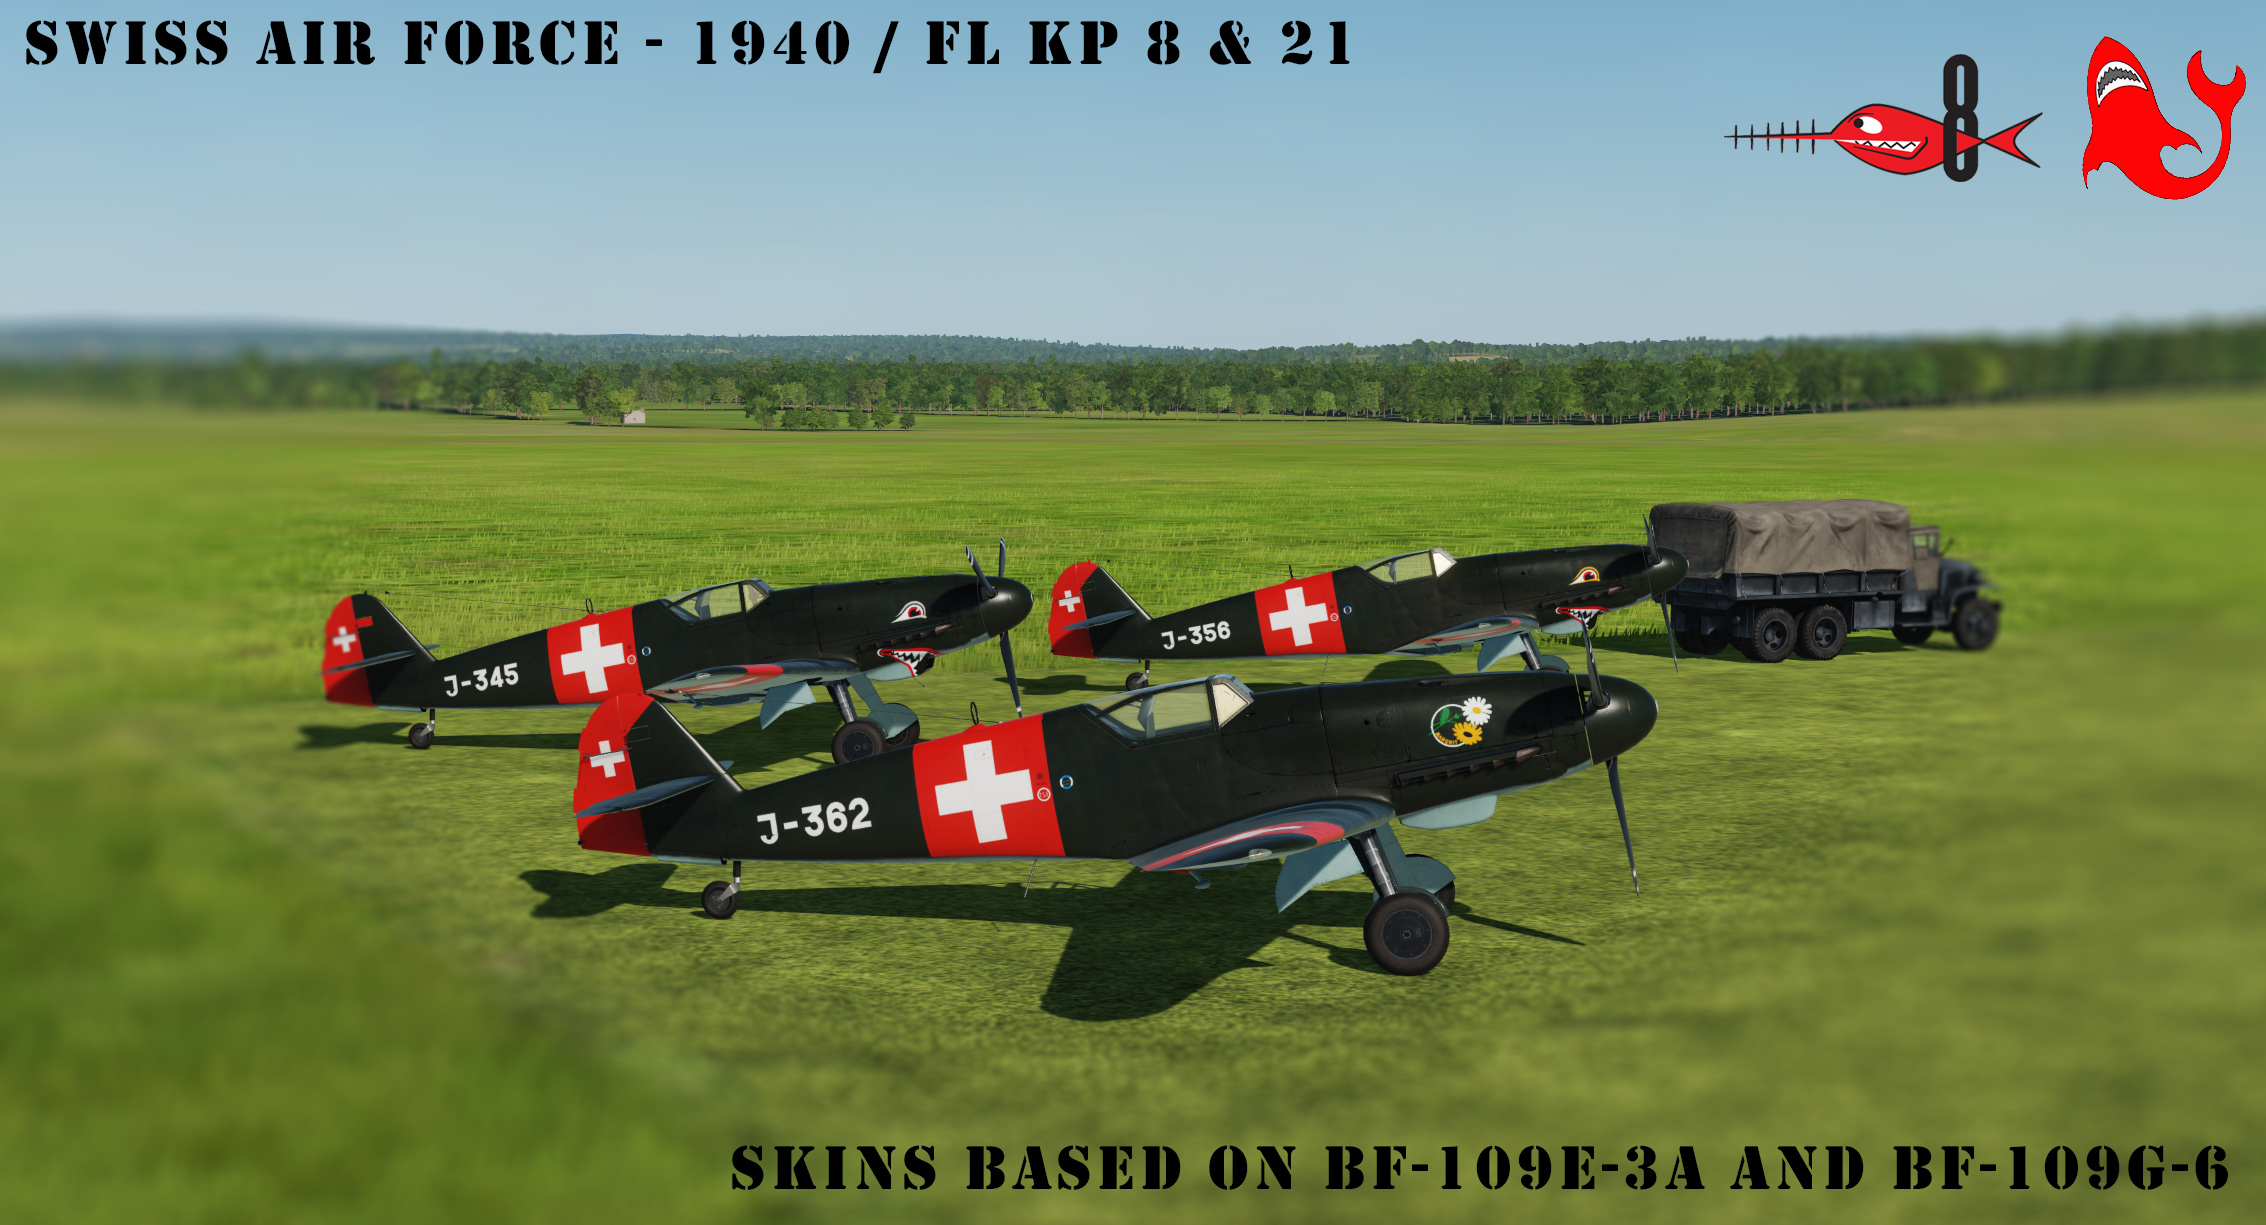 [Bf-109K-4] Swiss Air Force 1940 - Fl Kp 8 & 21